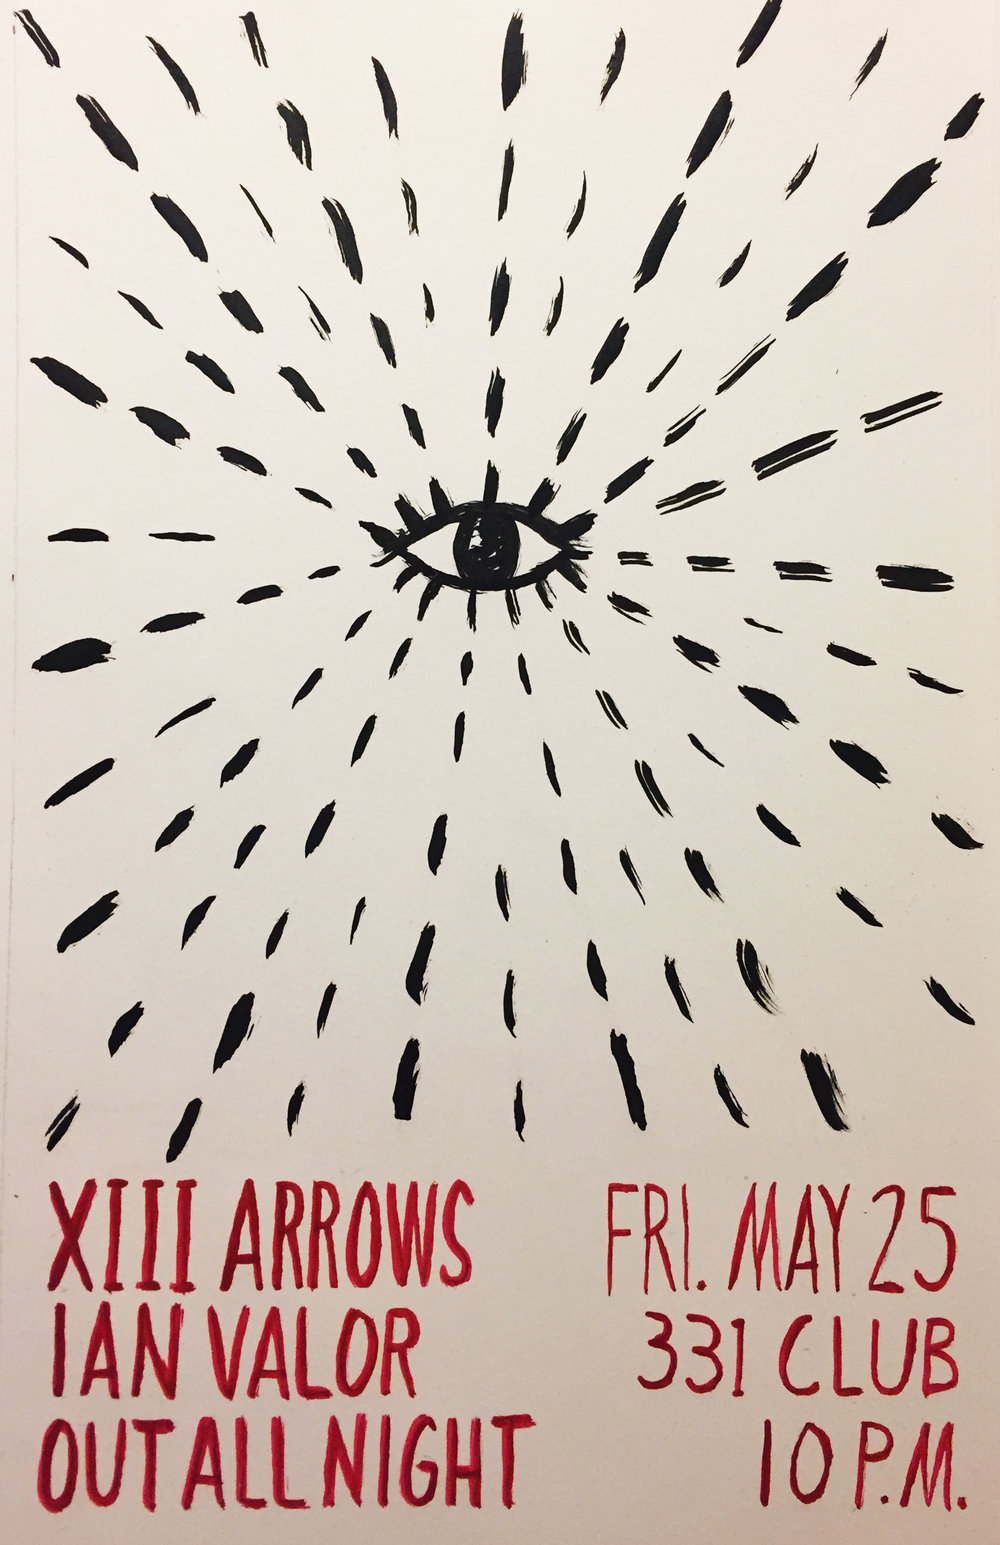 xiii-arrows-ian-valor-out-all-night-5-25-18-poster.jpg